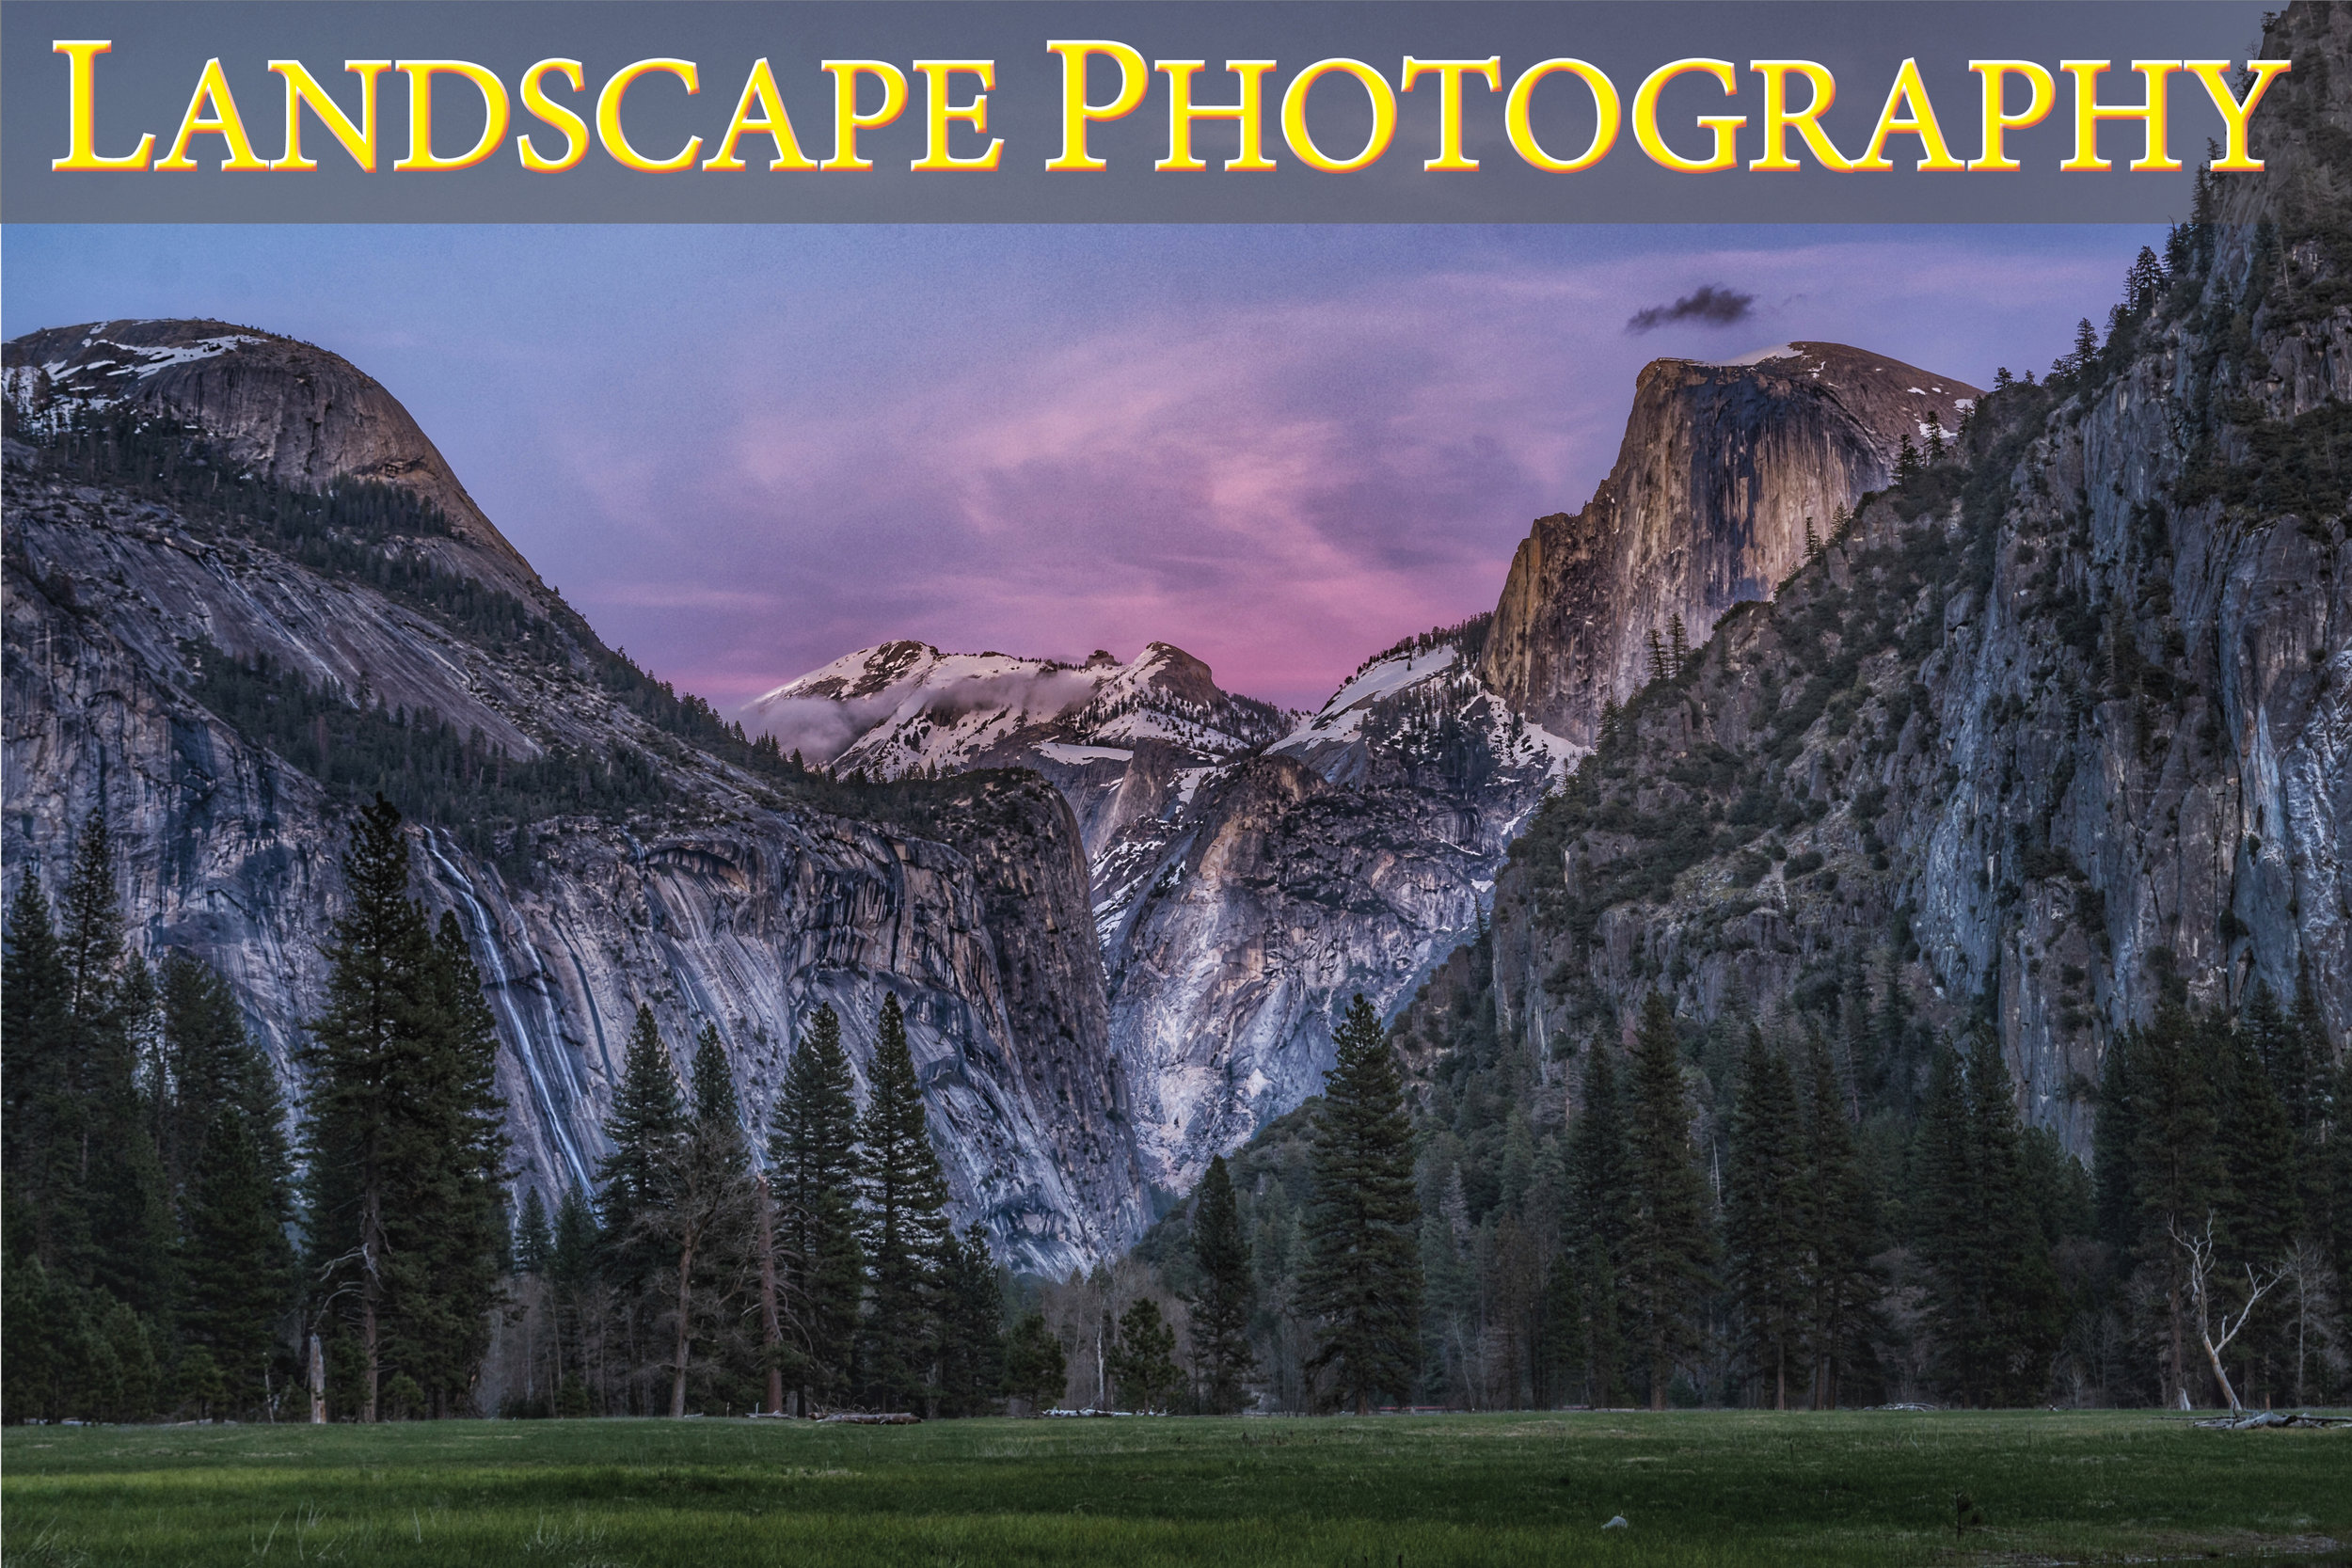 CLICK IMAGE TO VIEW LANDSCAPE PHOTOGRAPHY GALLERY